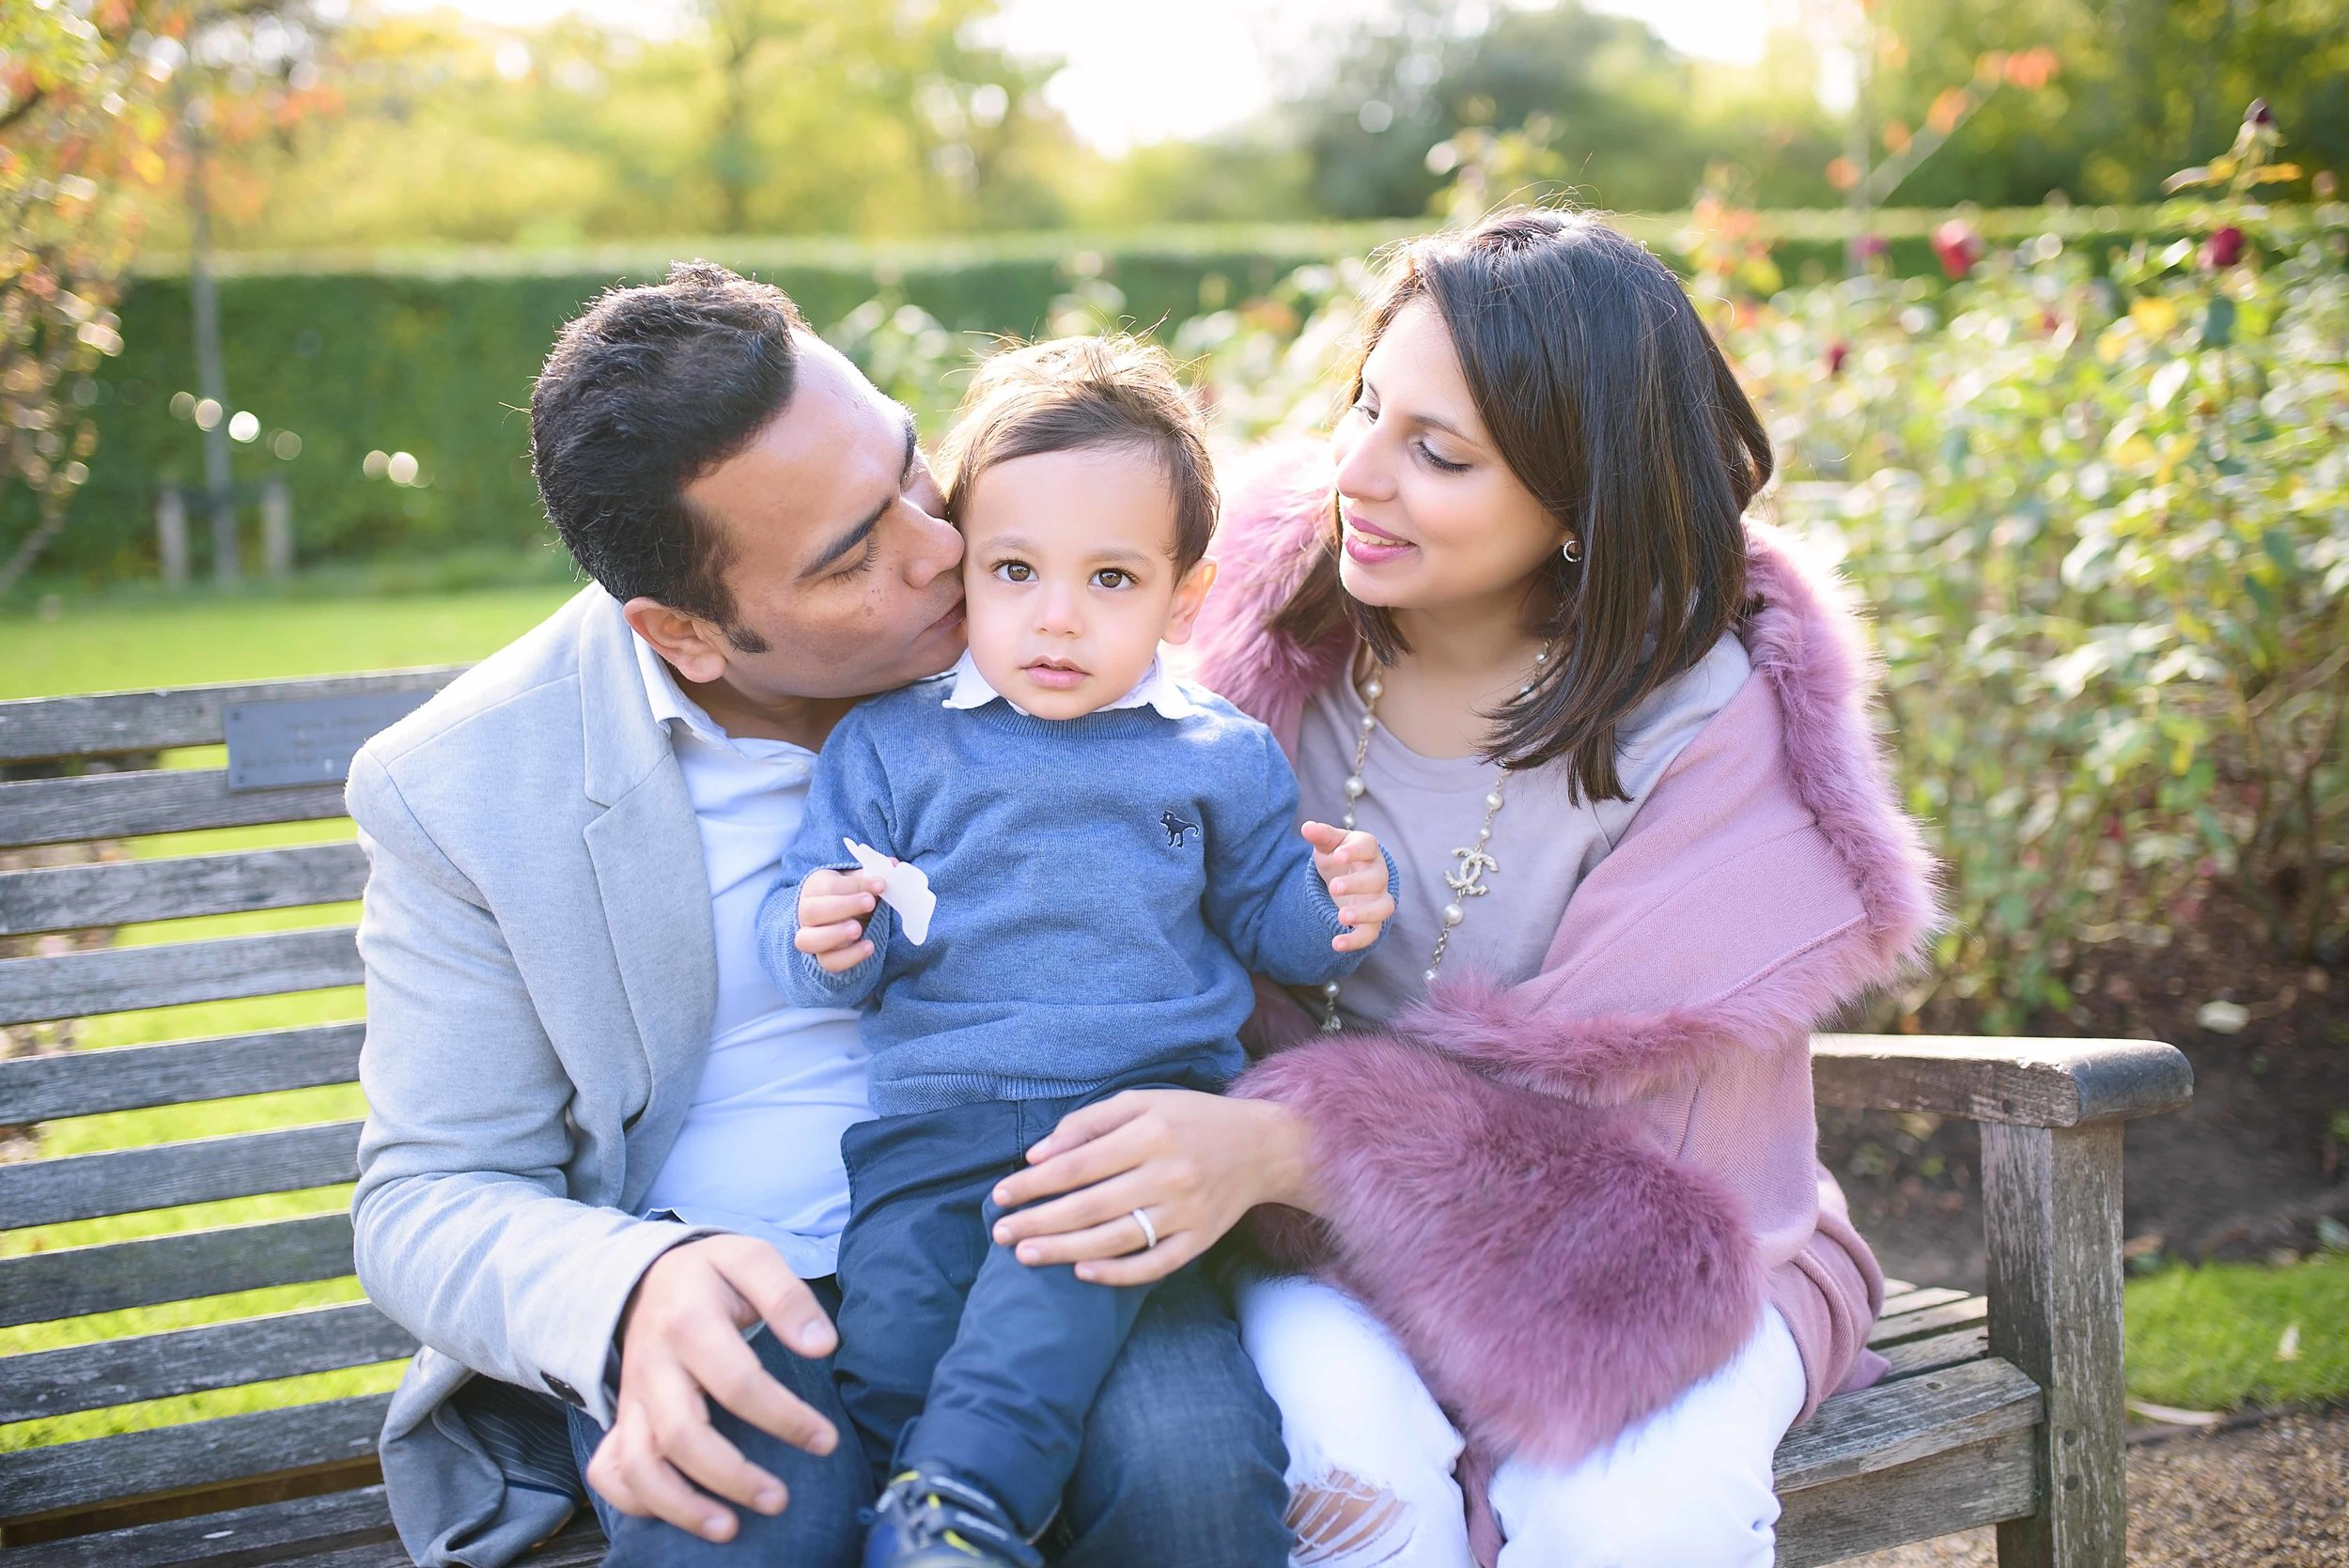 """We did an outdoor shoot in November with my toddler and newborn. All of us enjoyed the experience with Heather; she really focused on capturing special family moments. We will cherish these photos forever!"" - Leia, Maida Vale 